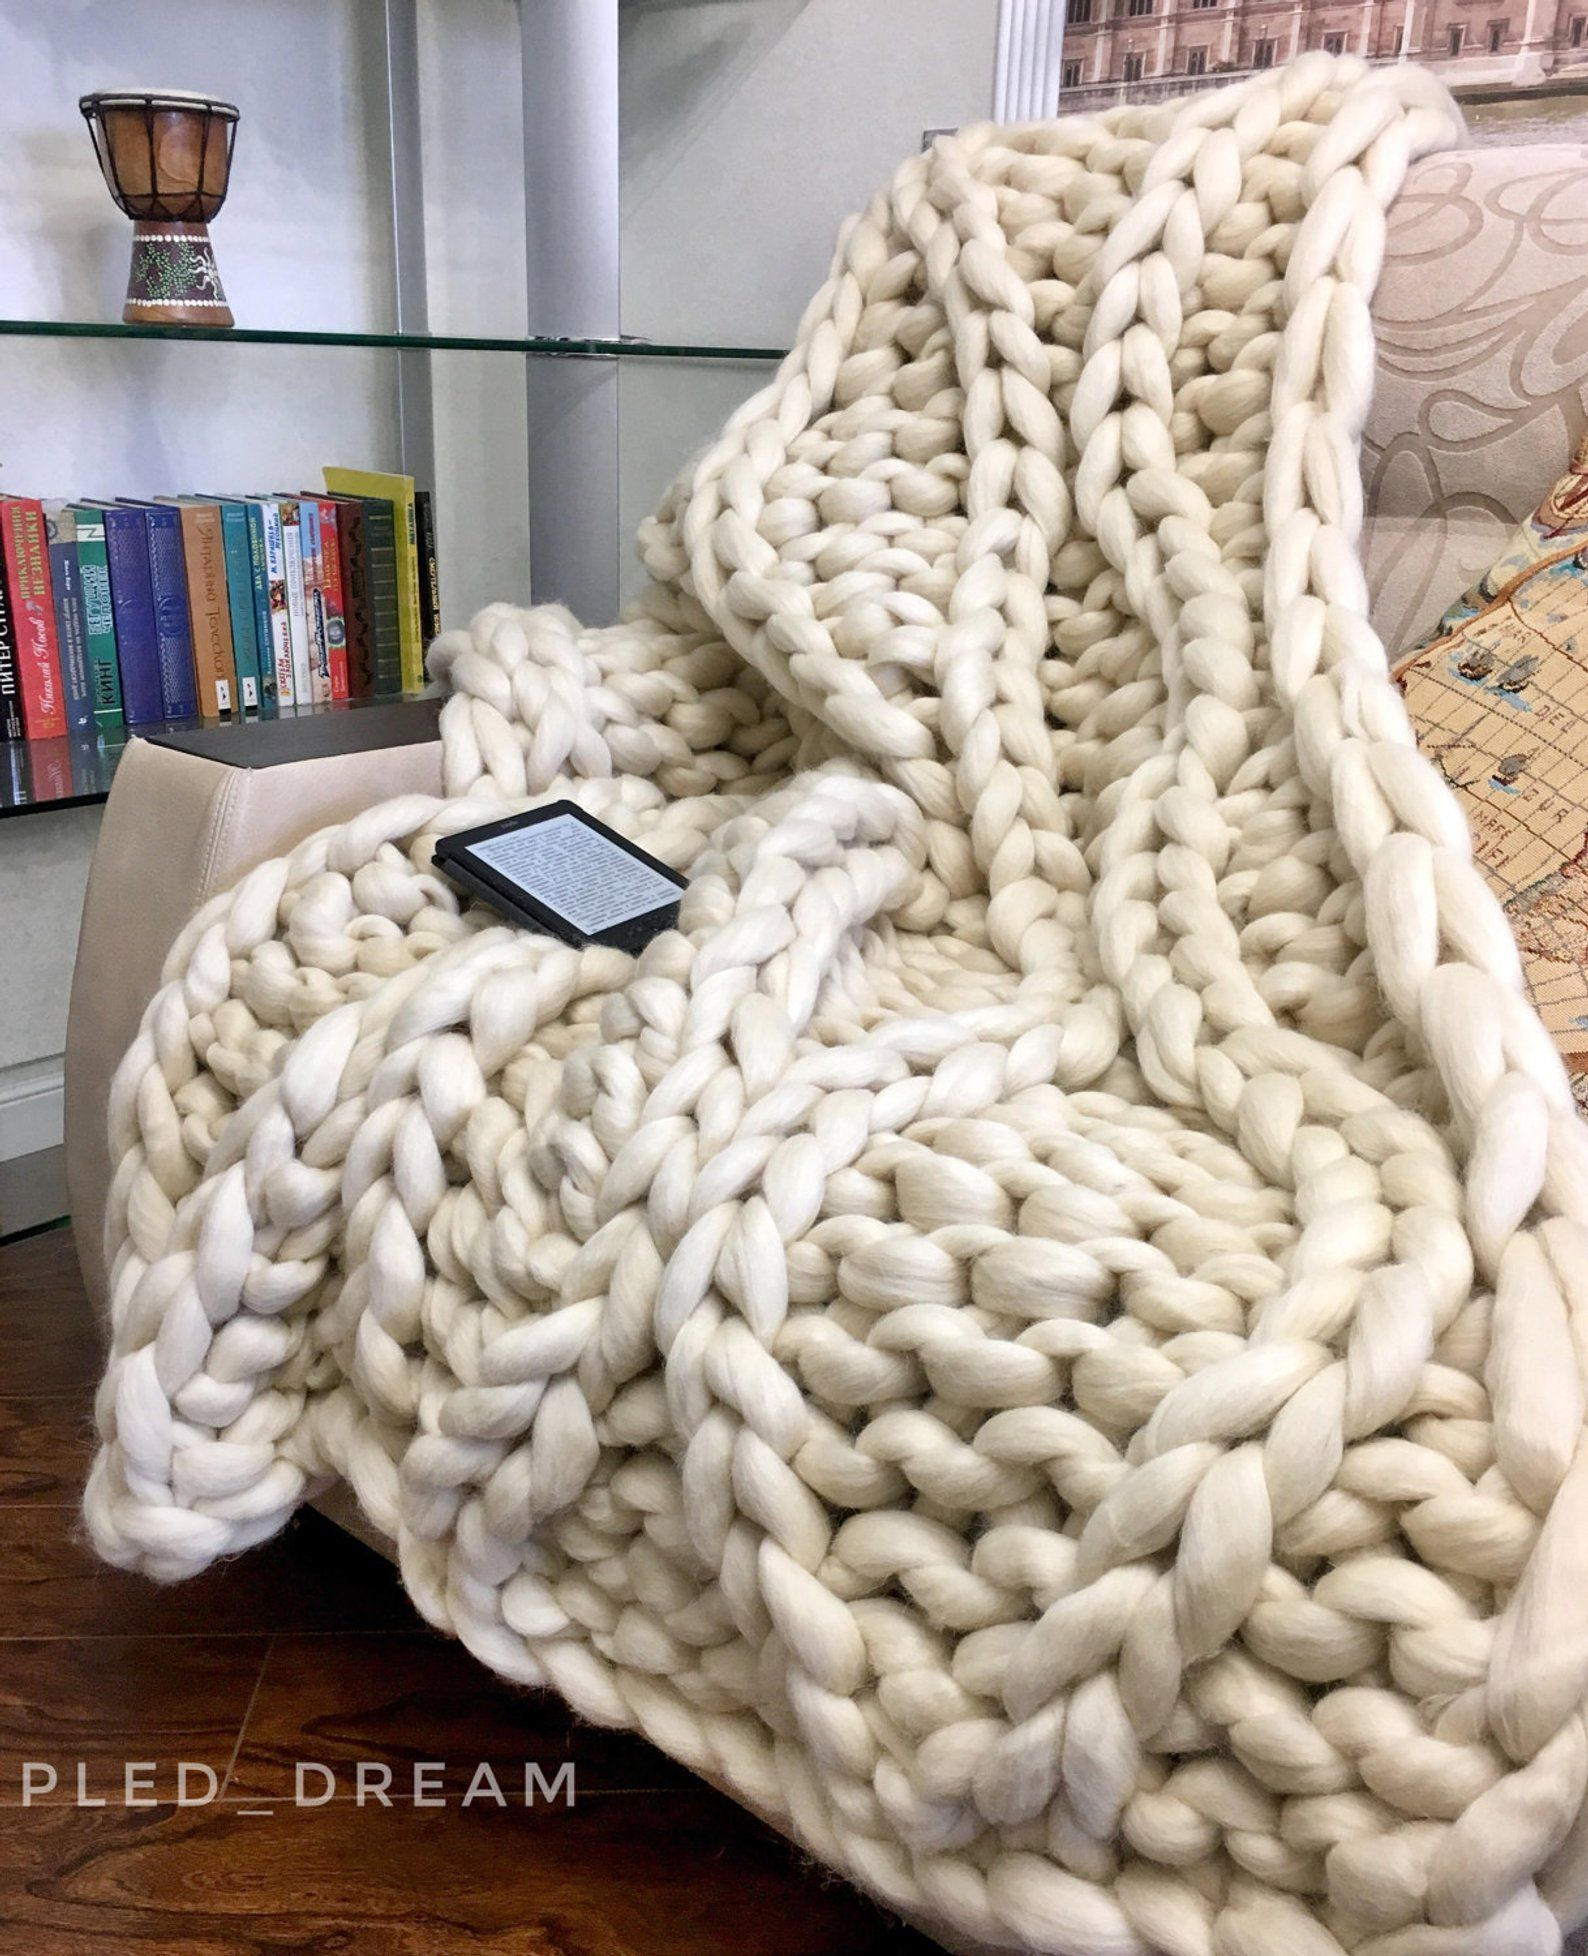 Sale White Chunky Merino Wool Blanket Big Yarn Blanket Thick Etsy Big Yarn Blanket Chunky Merino Wool Blanket Big Yarn